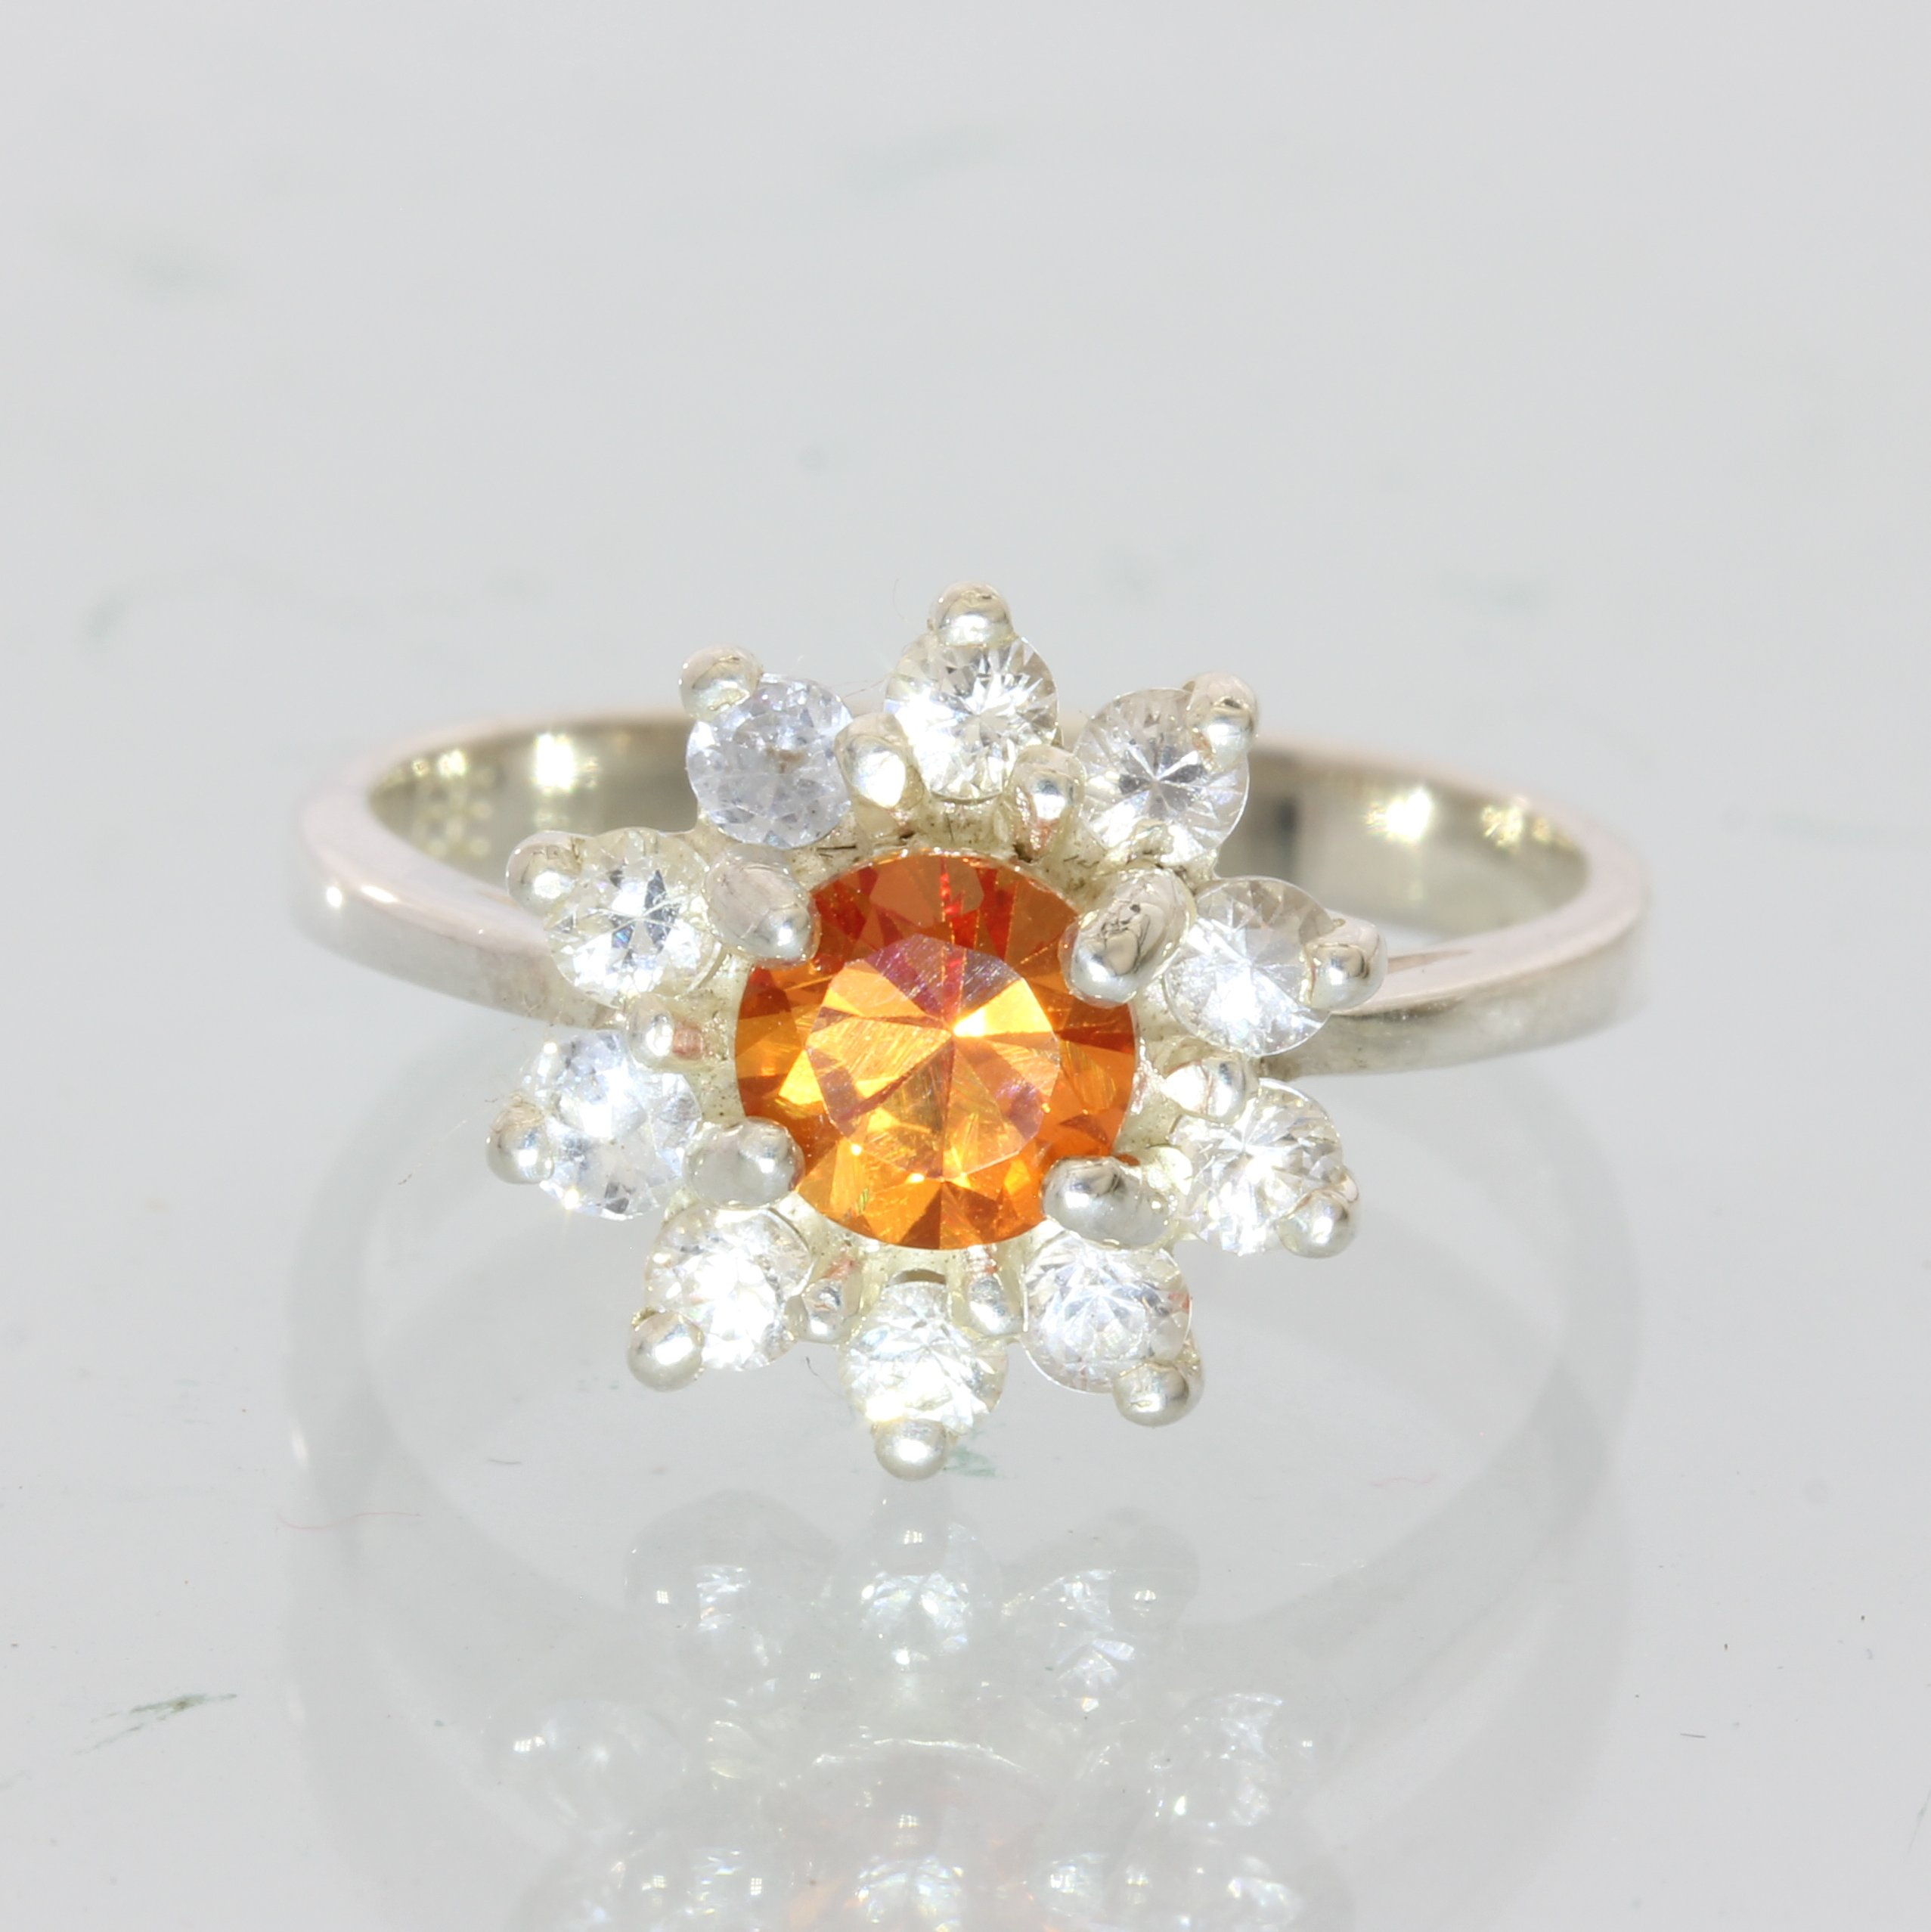 Orange Sapphire and White Sapphire Gemstone Halo Sterling 925 Silver Ring size 6